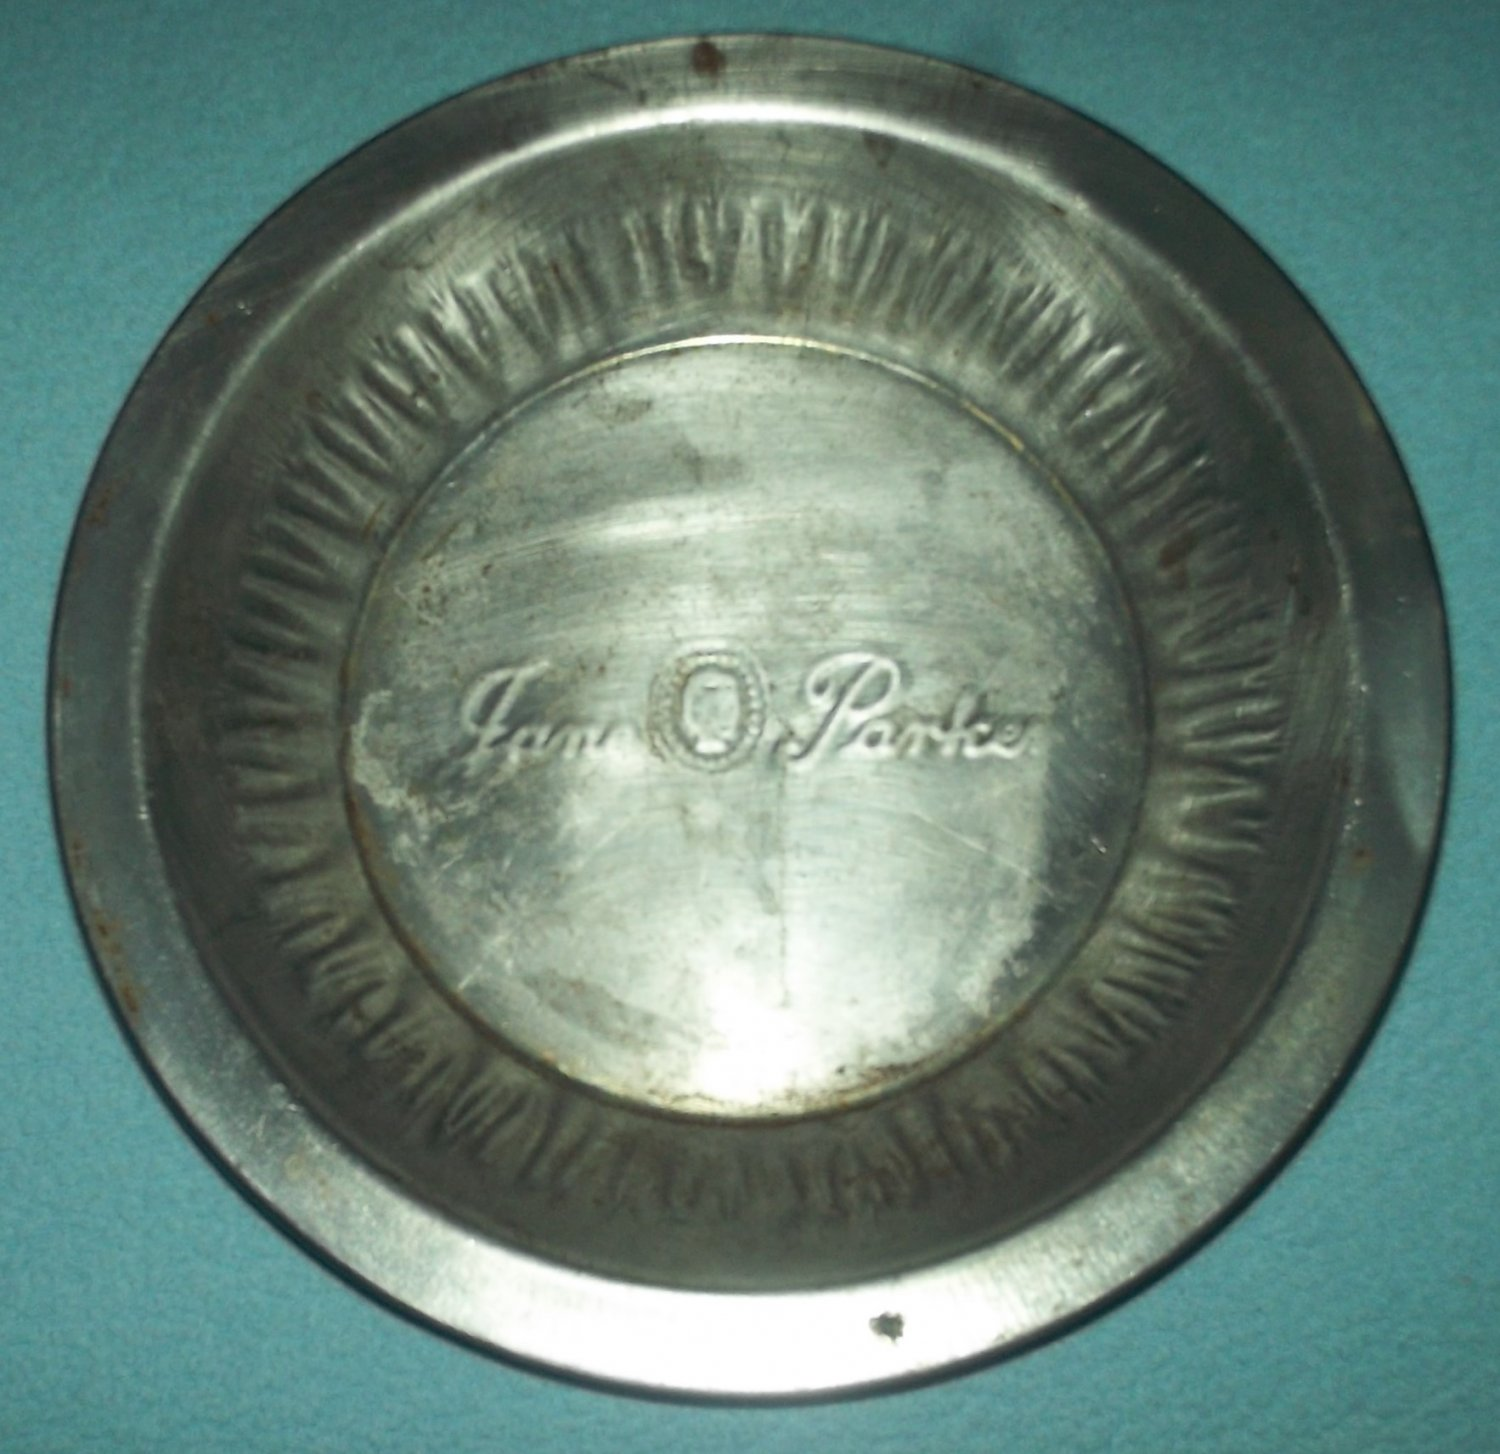 Vintage JANE PARKER A & P Pie Tin Plate Pan~Bakeware~Advertising~Metal~Great for Decor!